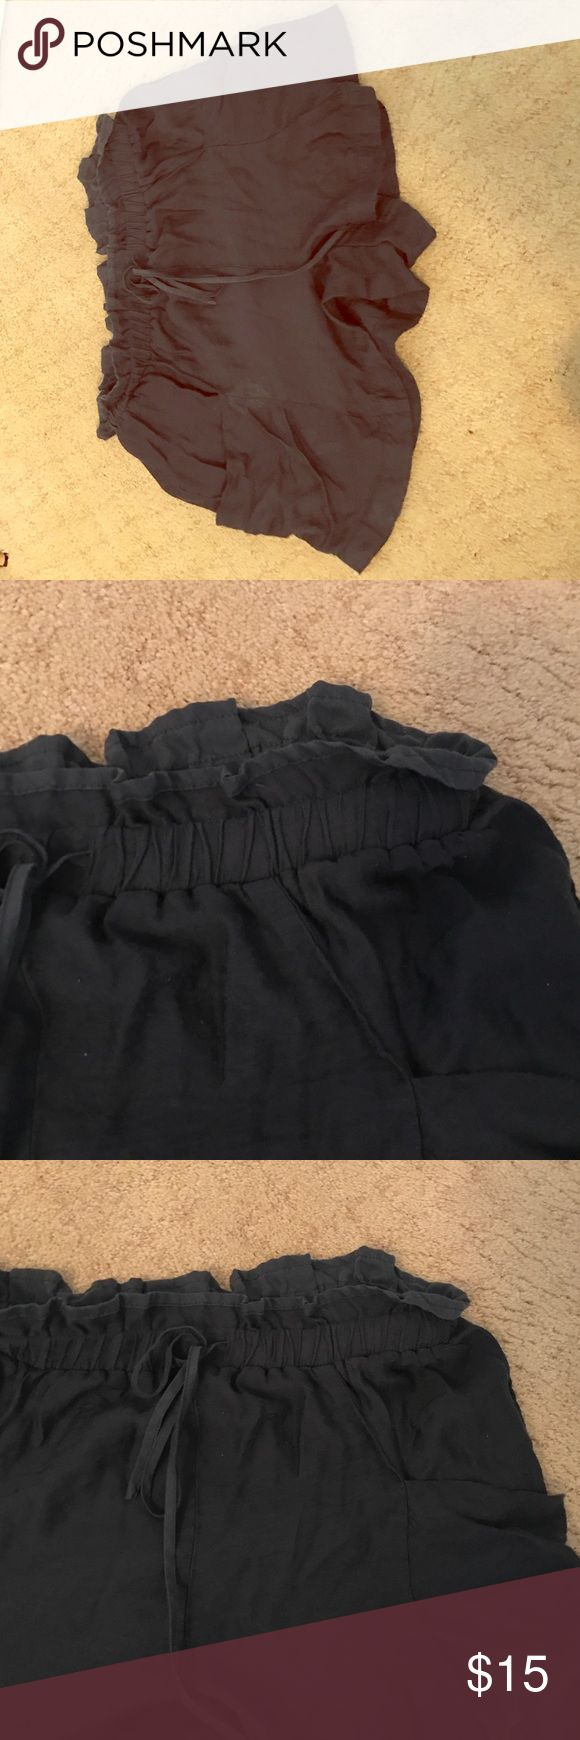 Navy Blue Soft Lounge Shorts Navy blue lounge shorts with draw-string waistline. Big side pockets. In good condition. Can be worn high or low-waisted. Urban Outfitters Shorts